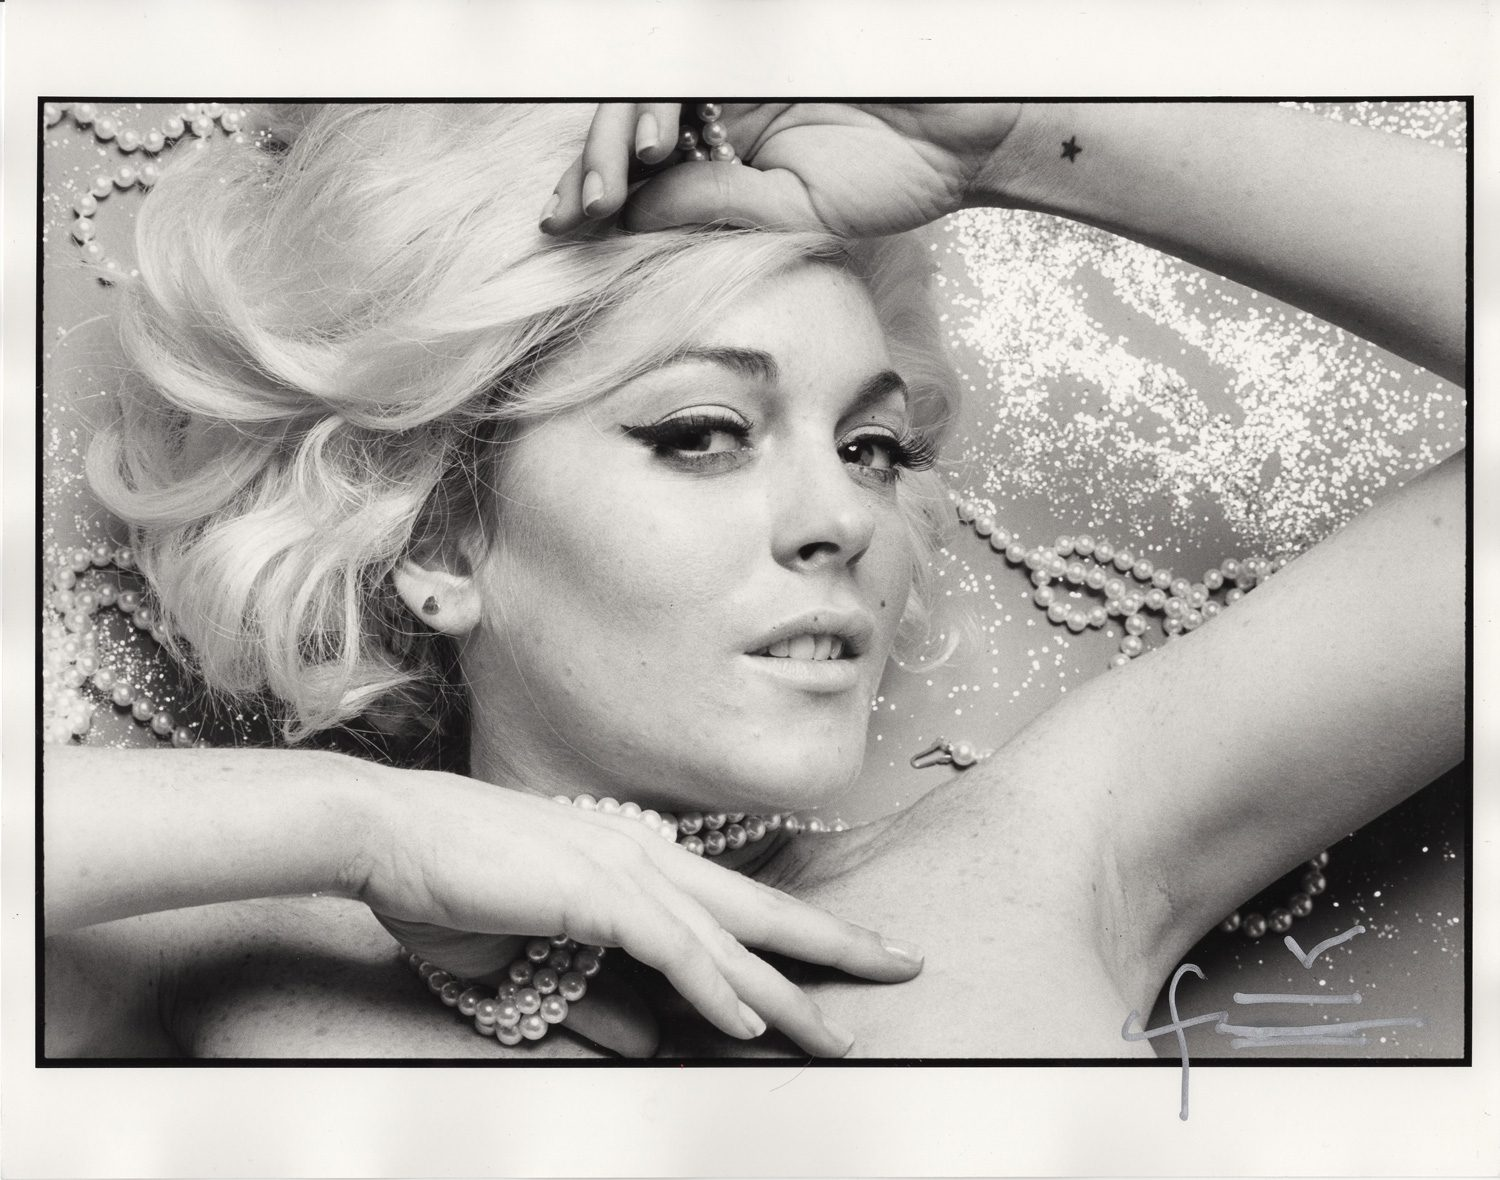 """Lindsay Lohan with diamonds, from Lindsay Lohan as Marilyn Monroe in """"The Last Sitting"""" for New York Magazine 2008"""